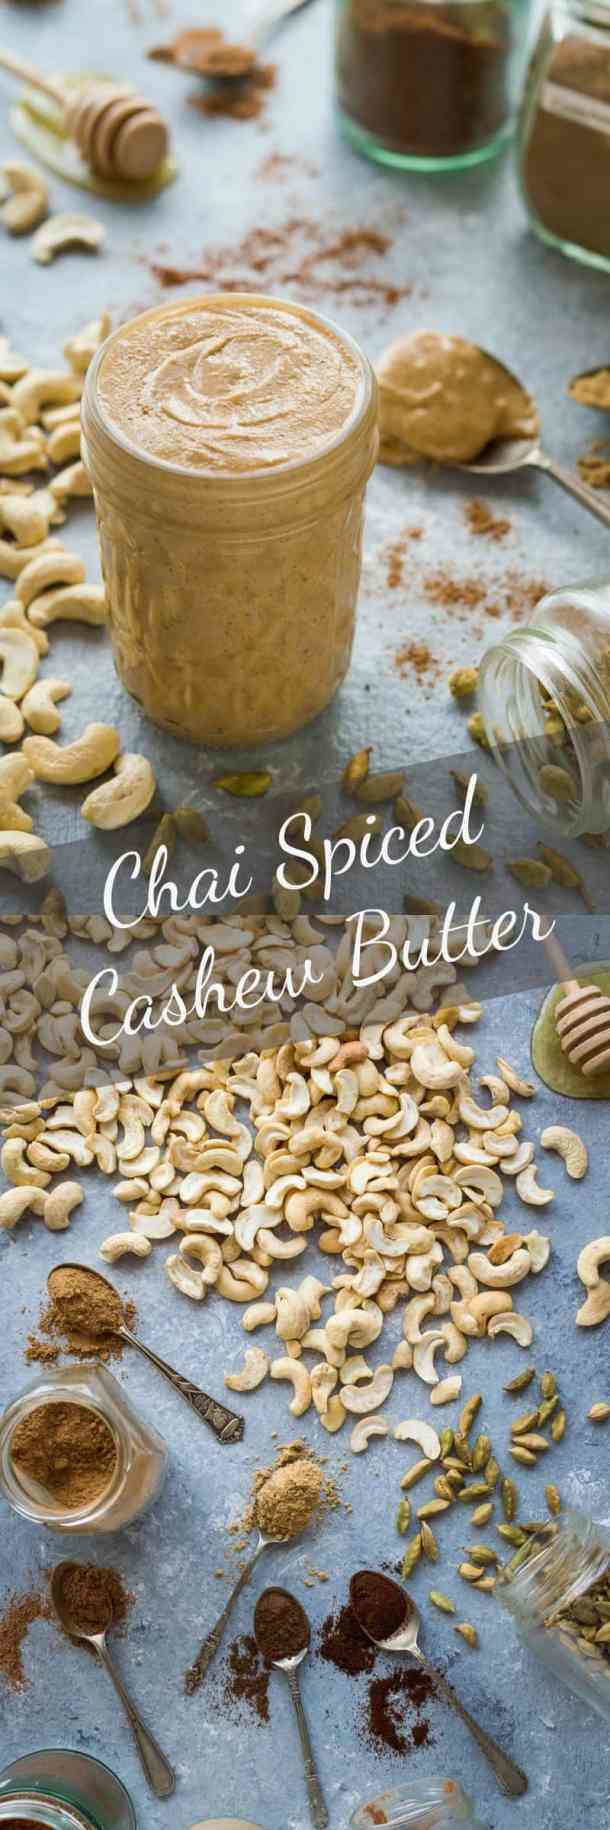 Chai spiced cashew nut butter - smooth, creamy, lightly spiced and utterly addictive! #vegan #healthy